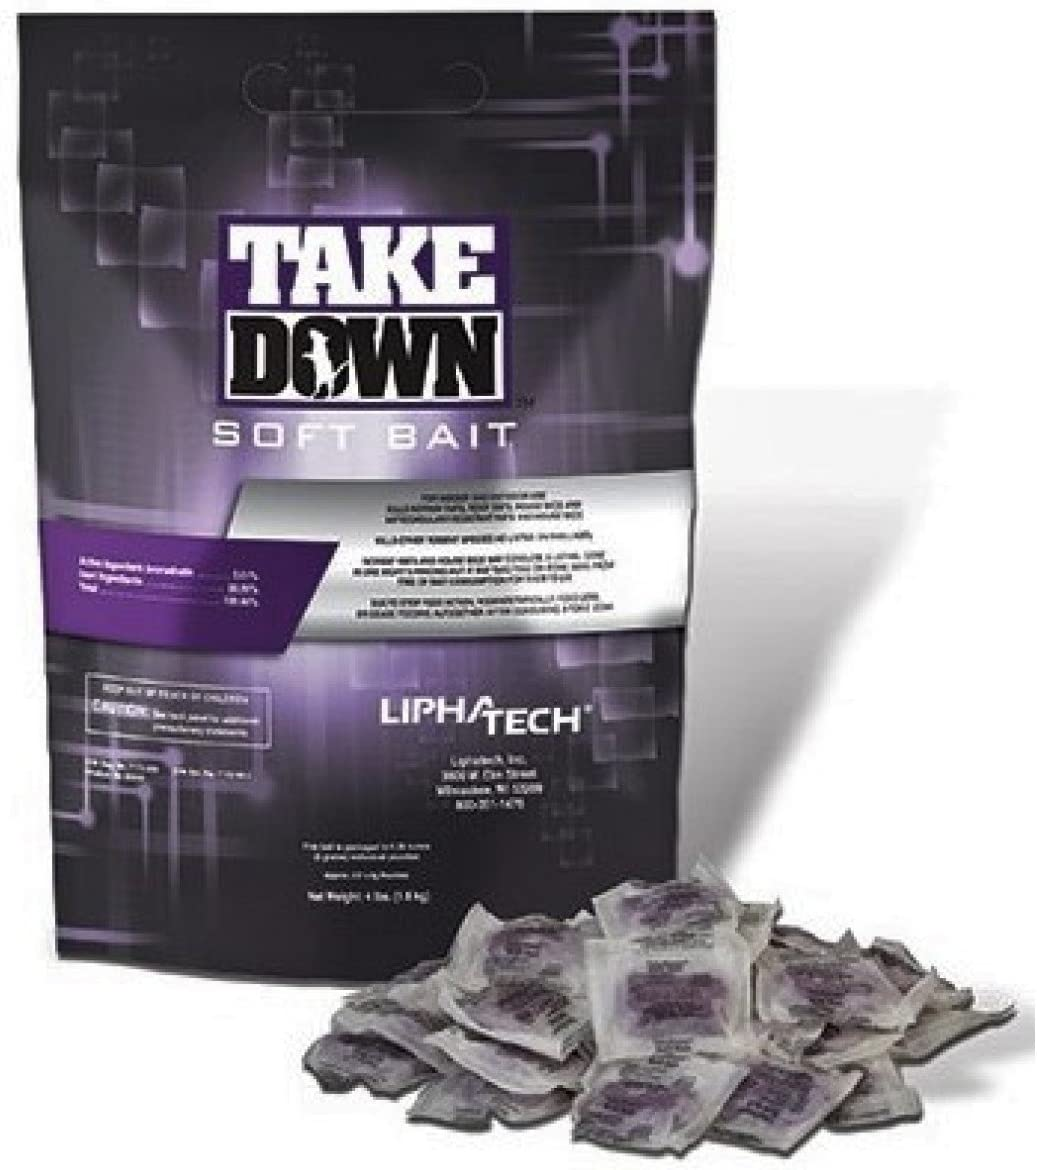 TakeDown Soft Fort Worth Mall Bait half Rodenticide lb BAG 4